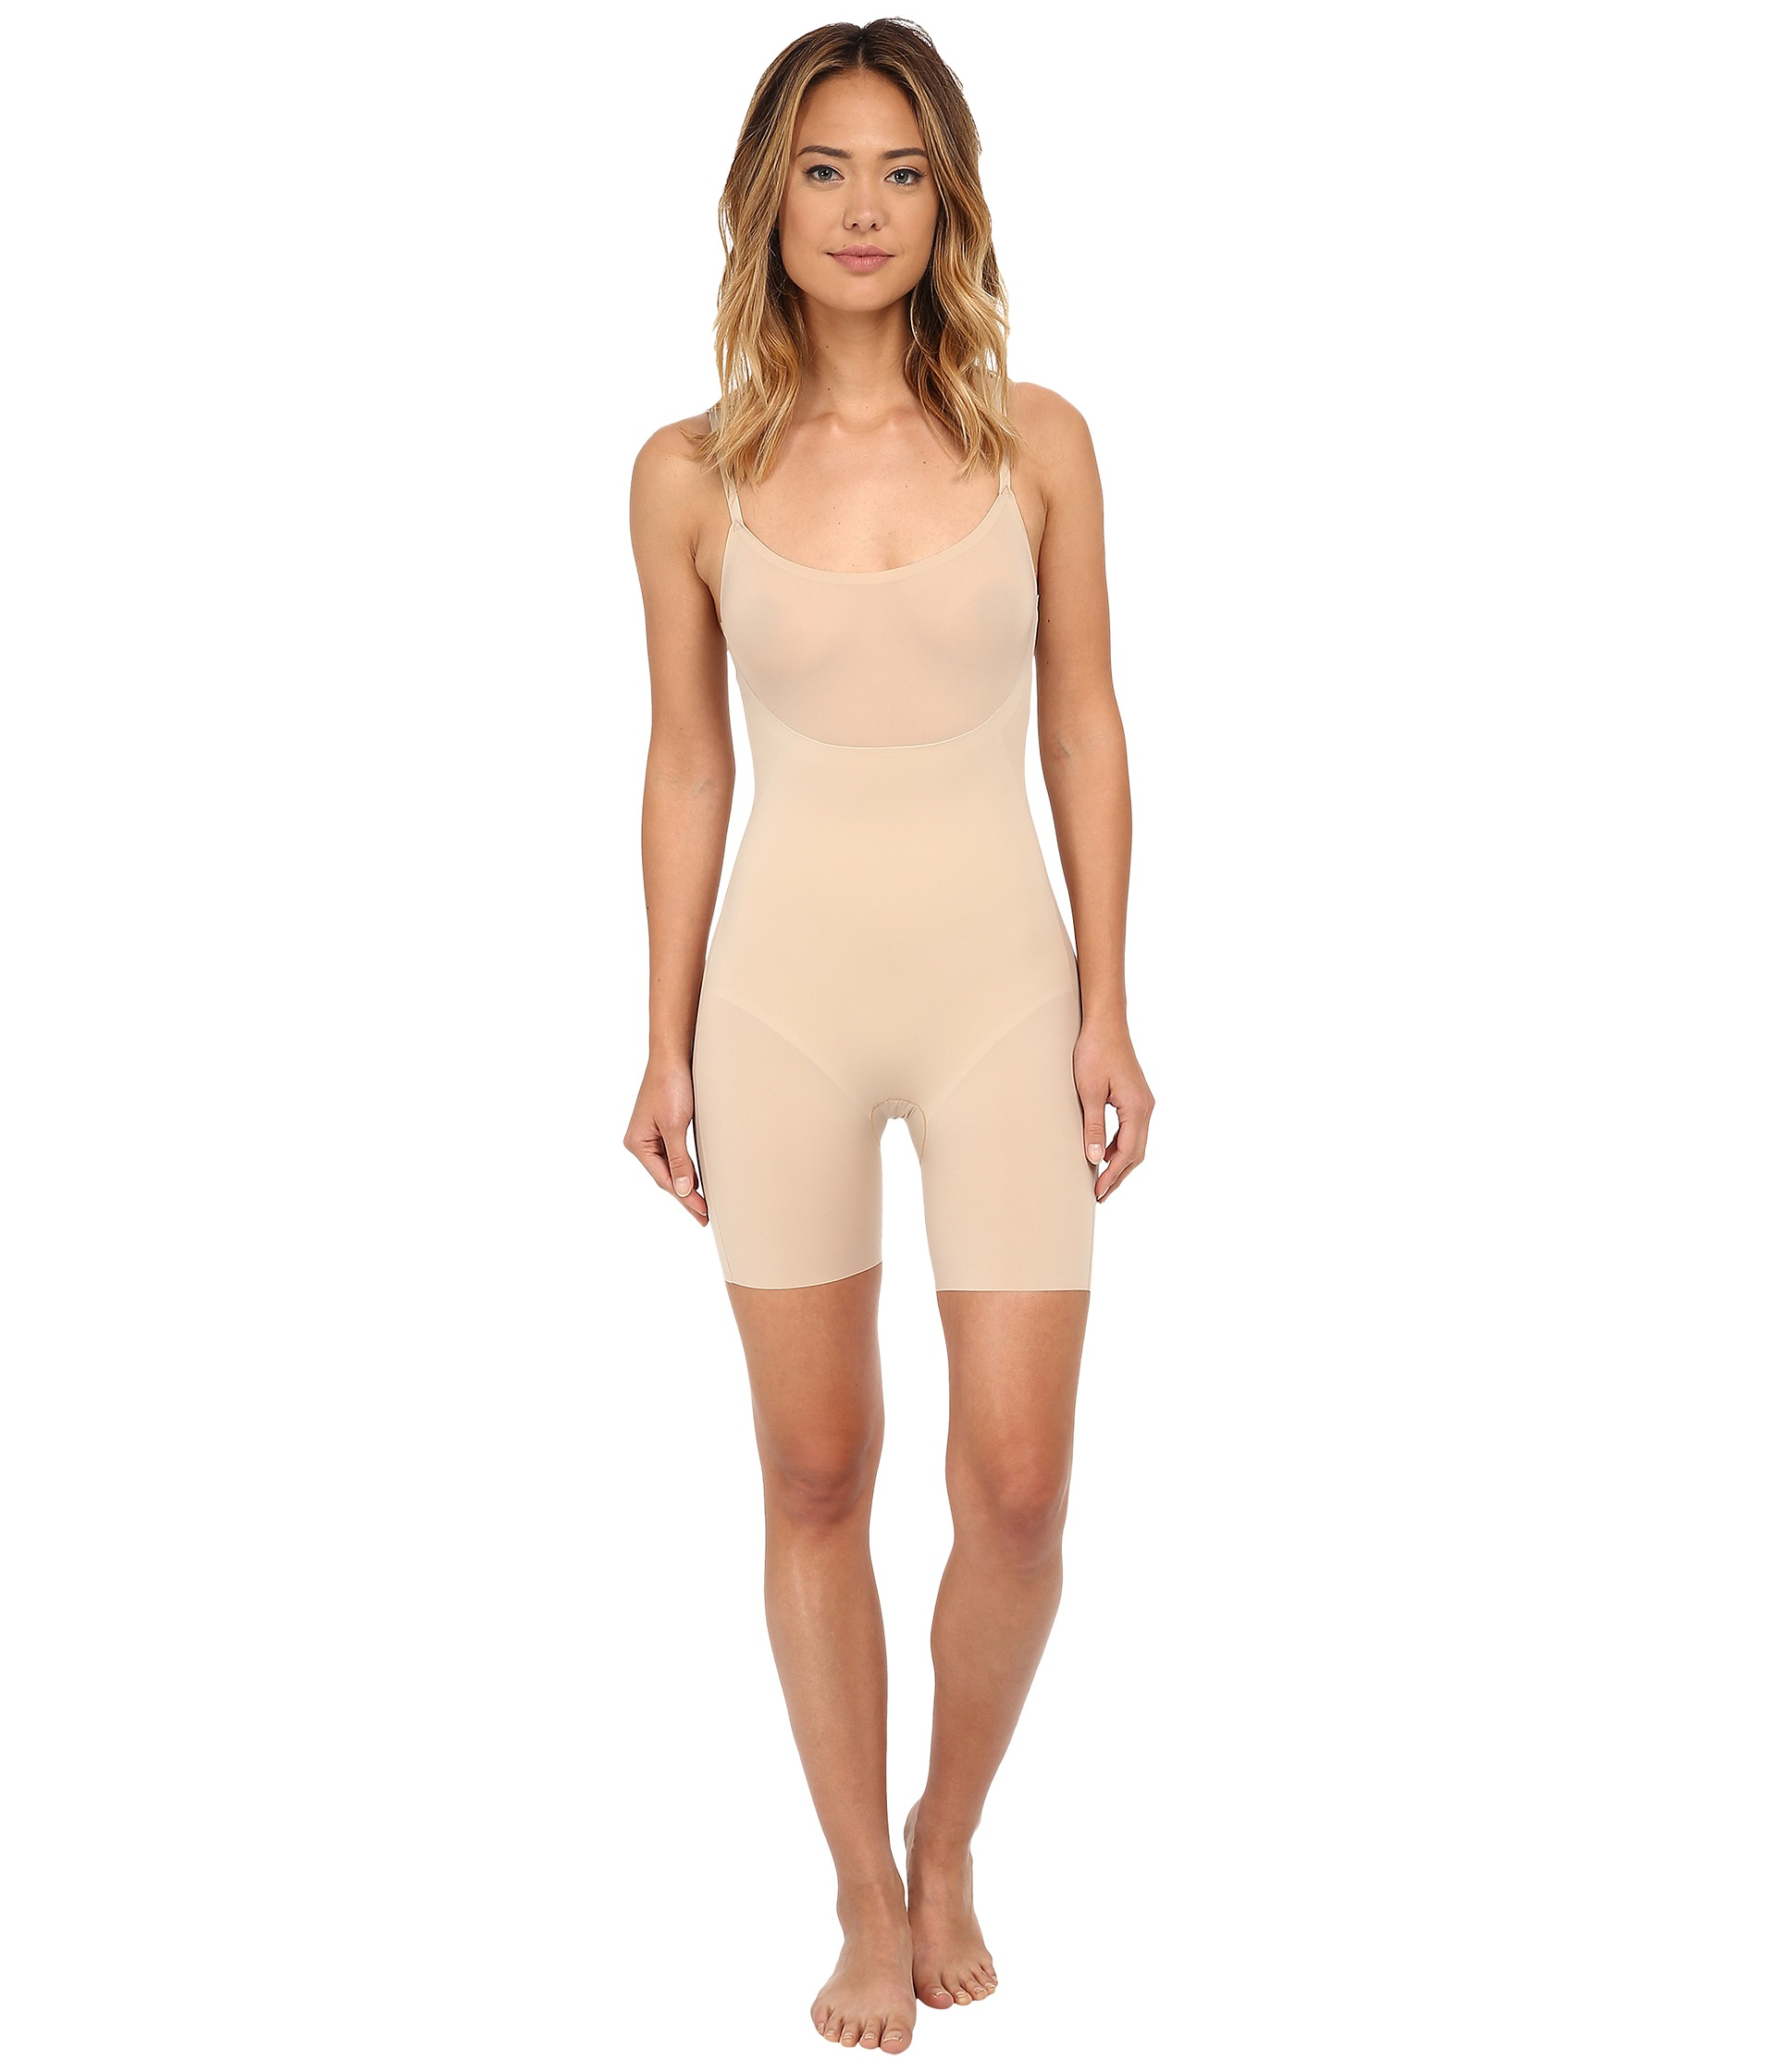 Spanx Trust Your Thinstincts Adjustable Strap Mid Thigh Body